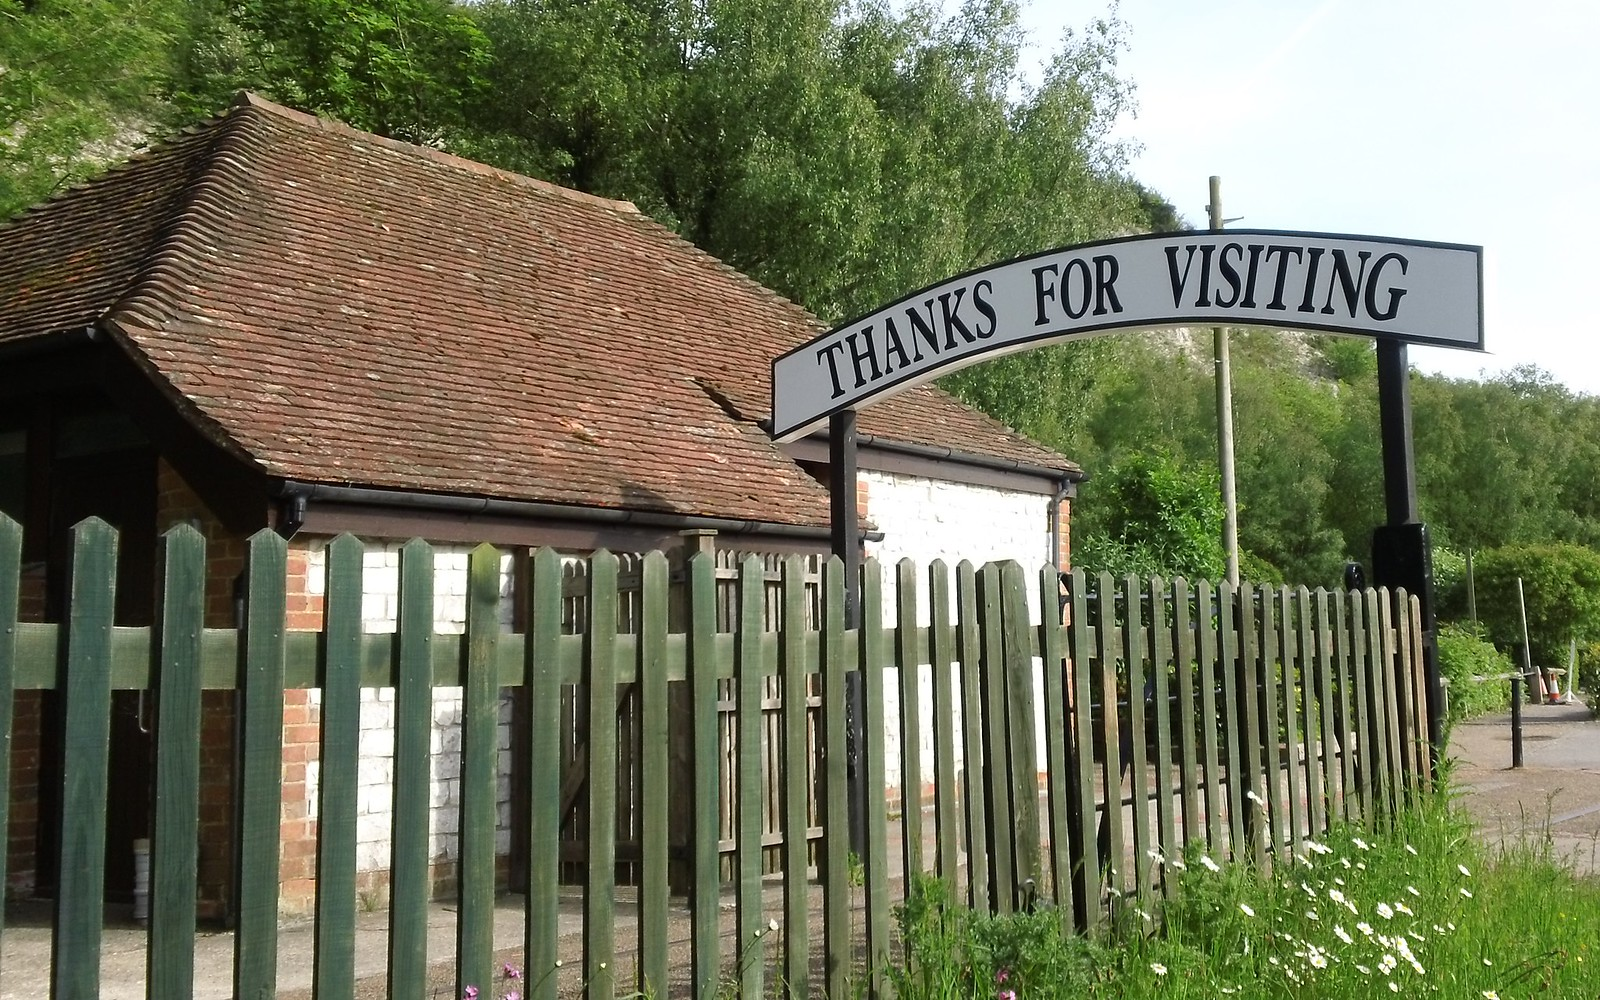 Says it all Amberley station